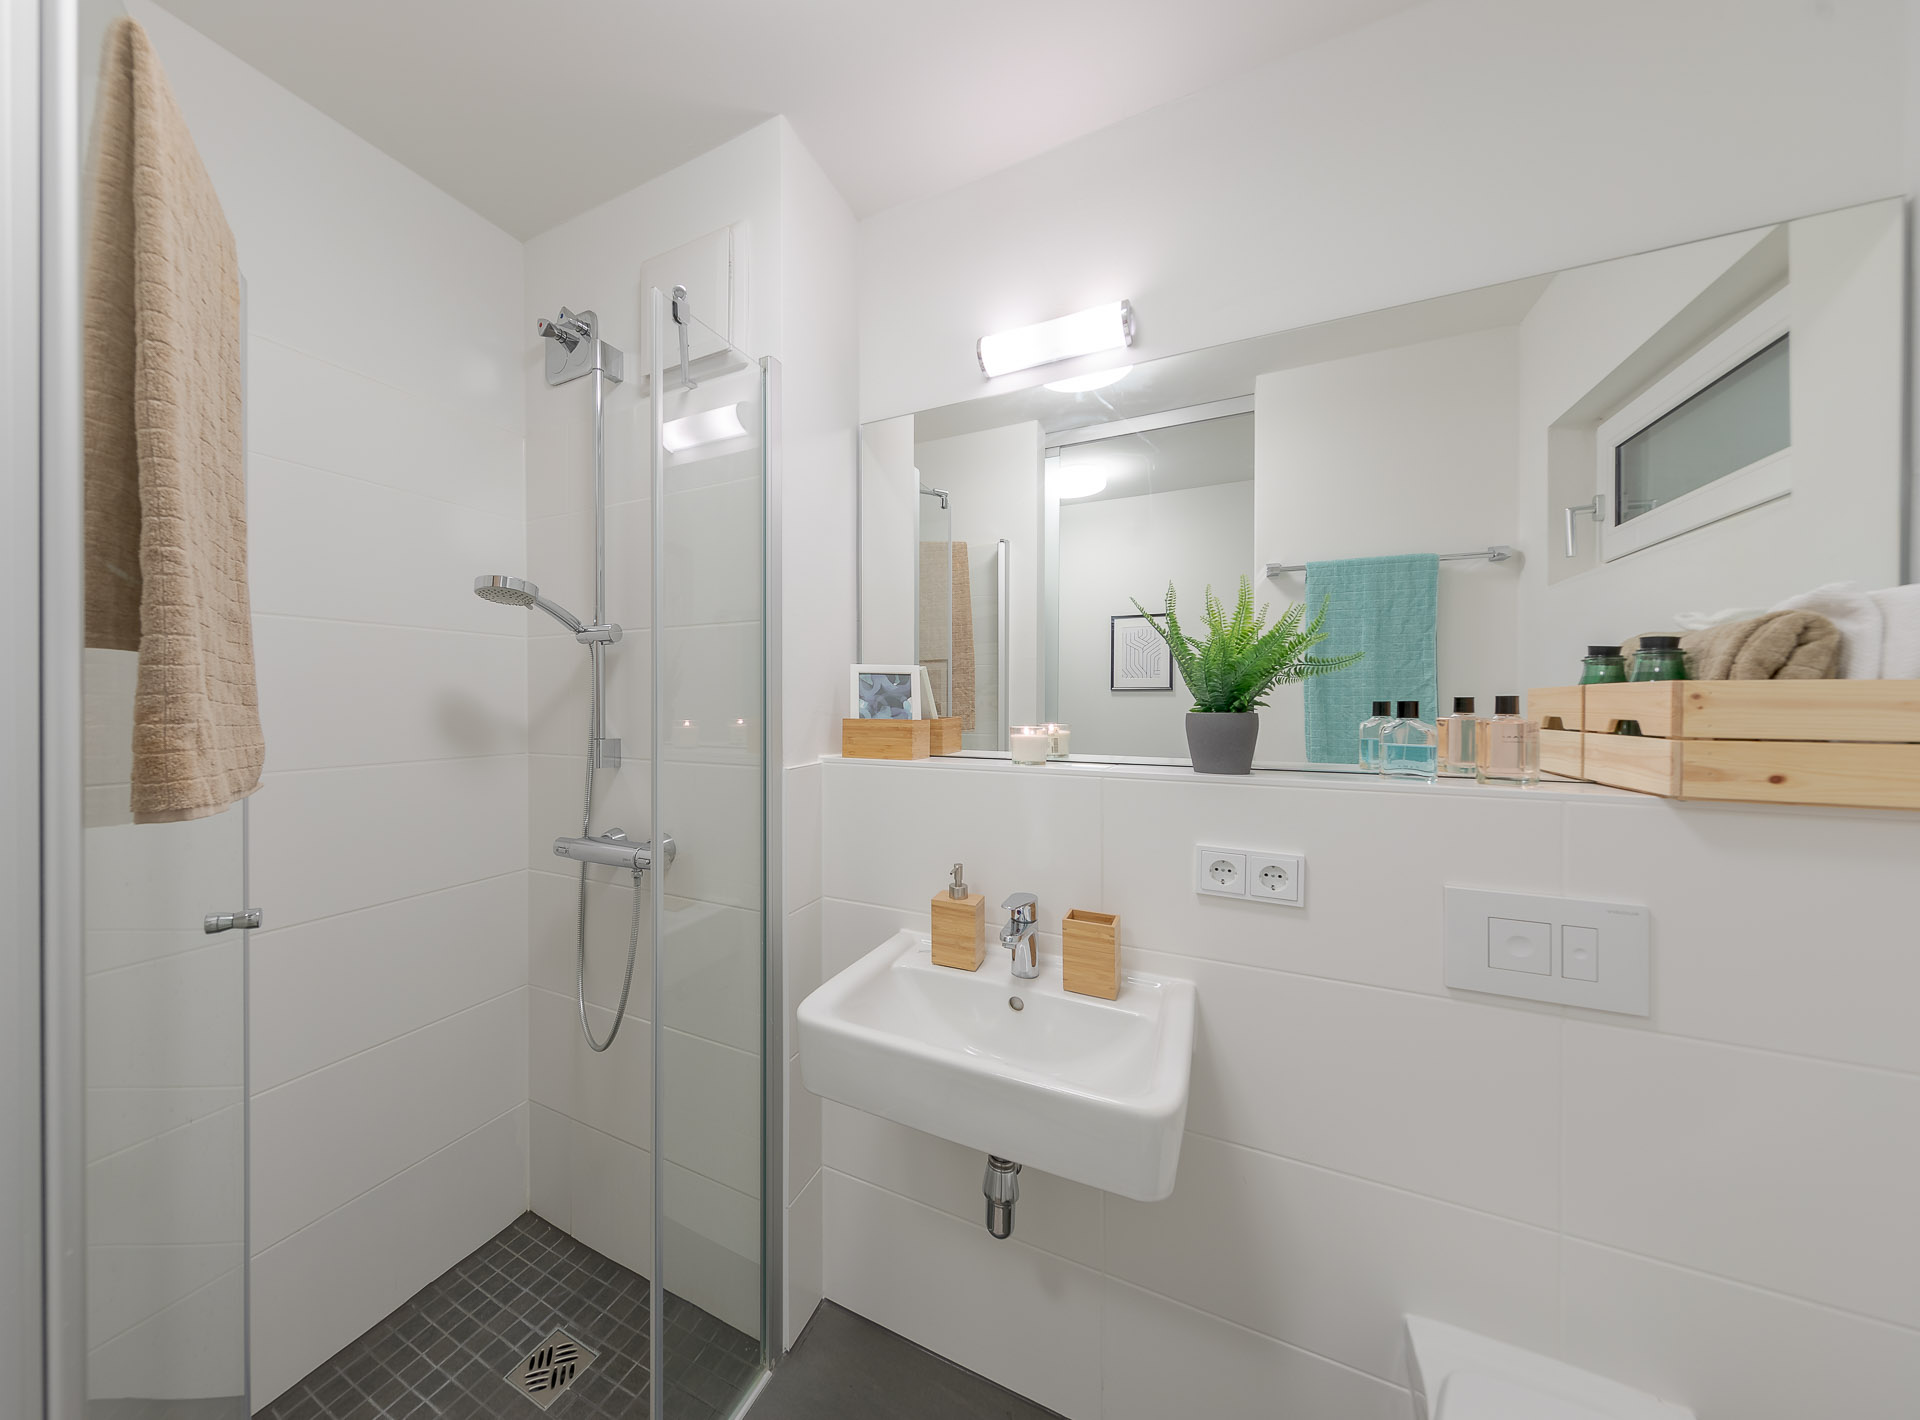 Bathroom view of THE FIZZ Hanover with sink and mirror in the middle, shower room with open glass door to the left and toilet seat barely visible on the bottom right.